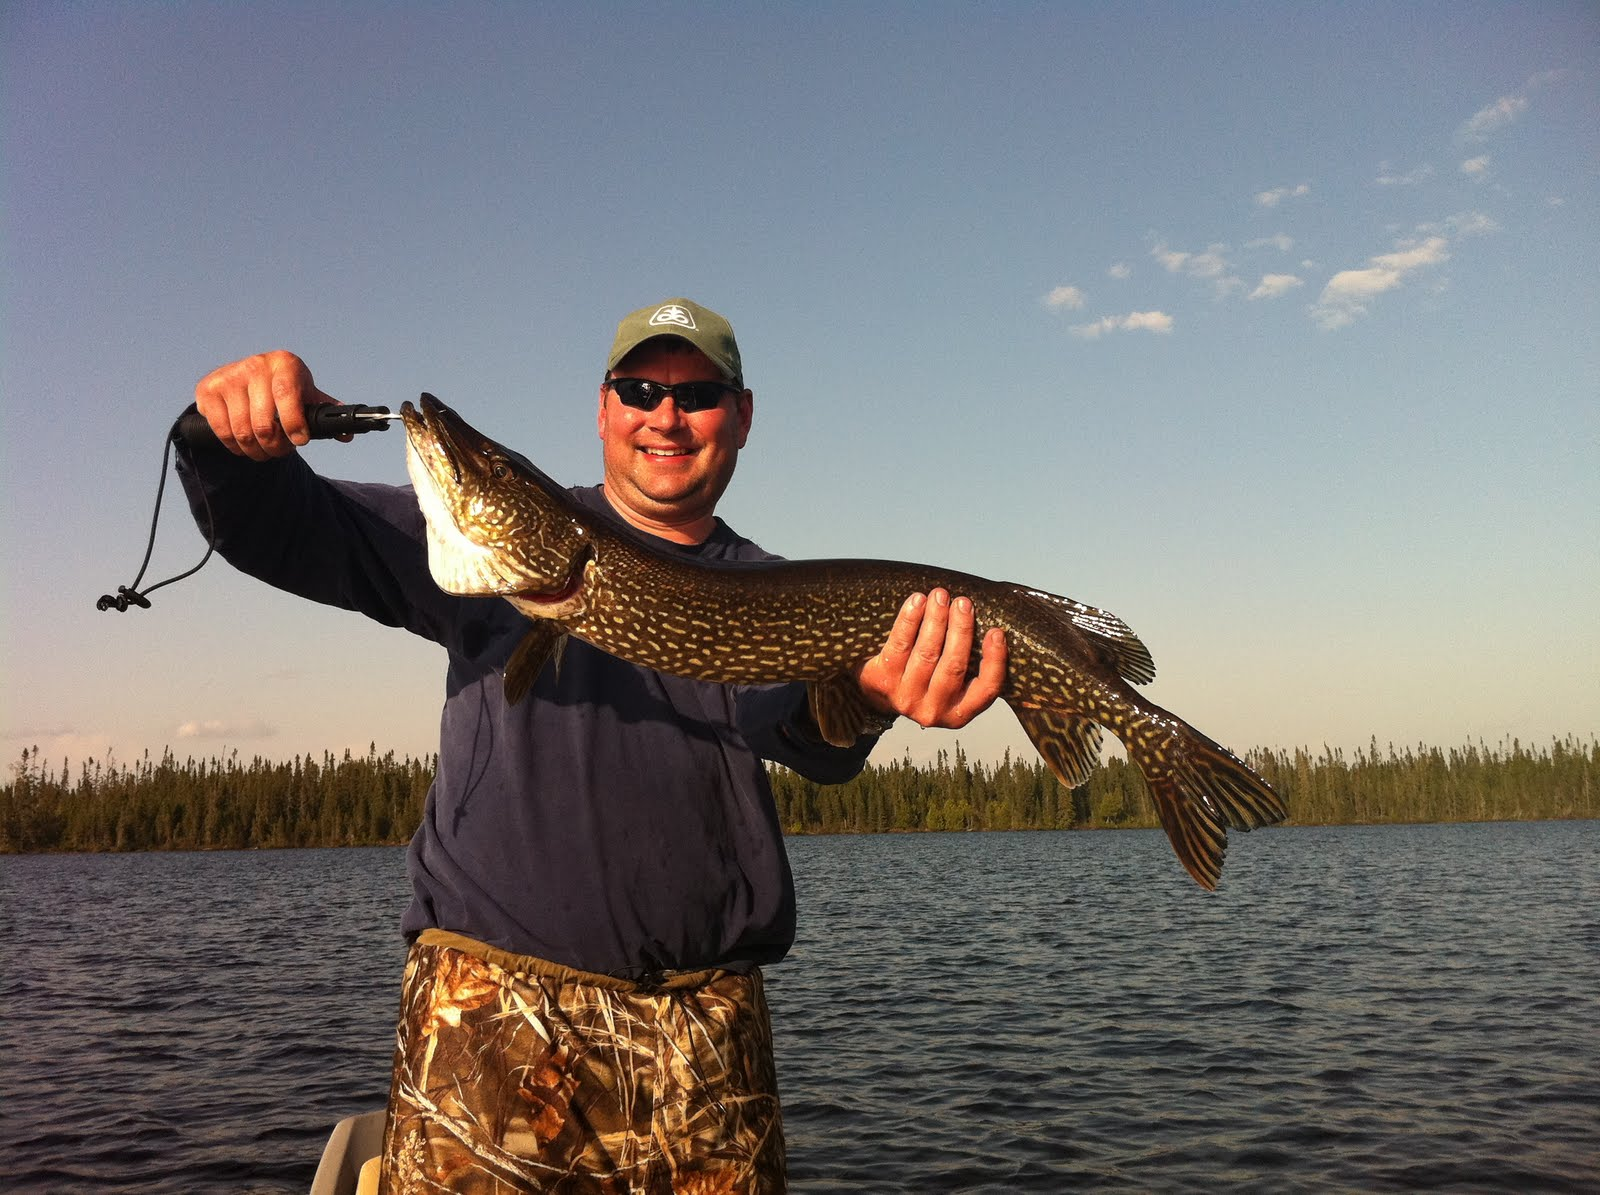 Fly in fishing and hunting rob thompson on madison lake for Canadian fishing trips cheap